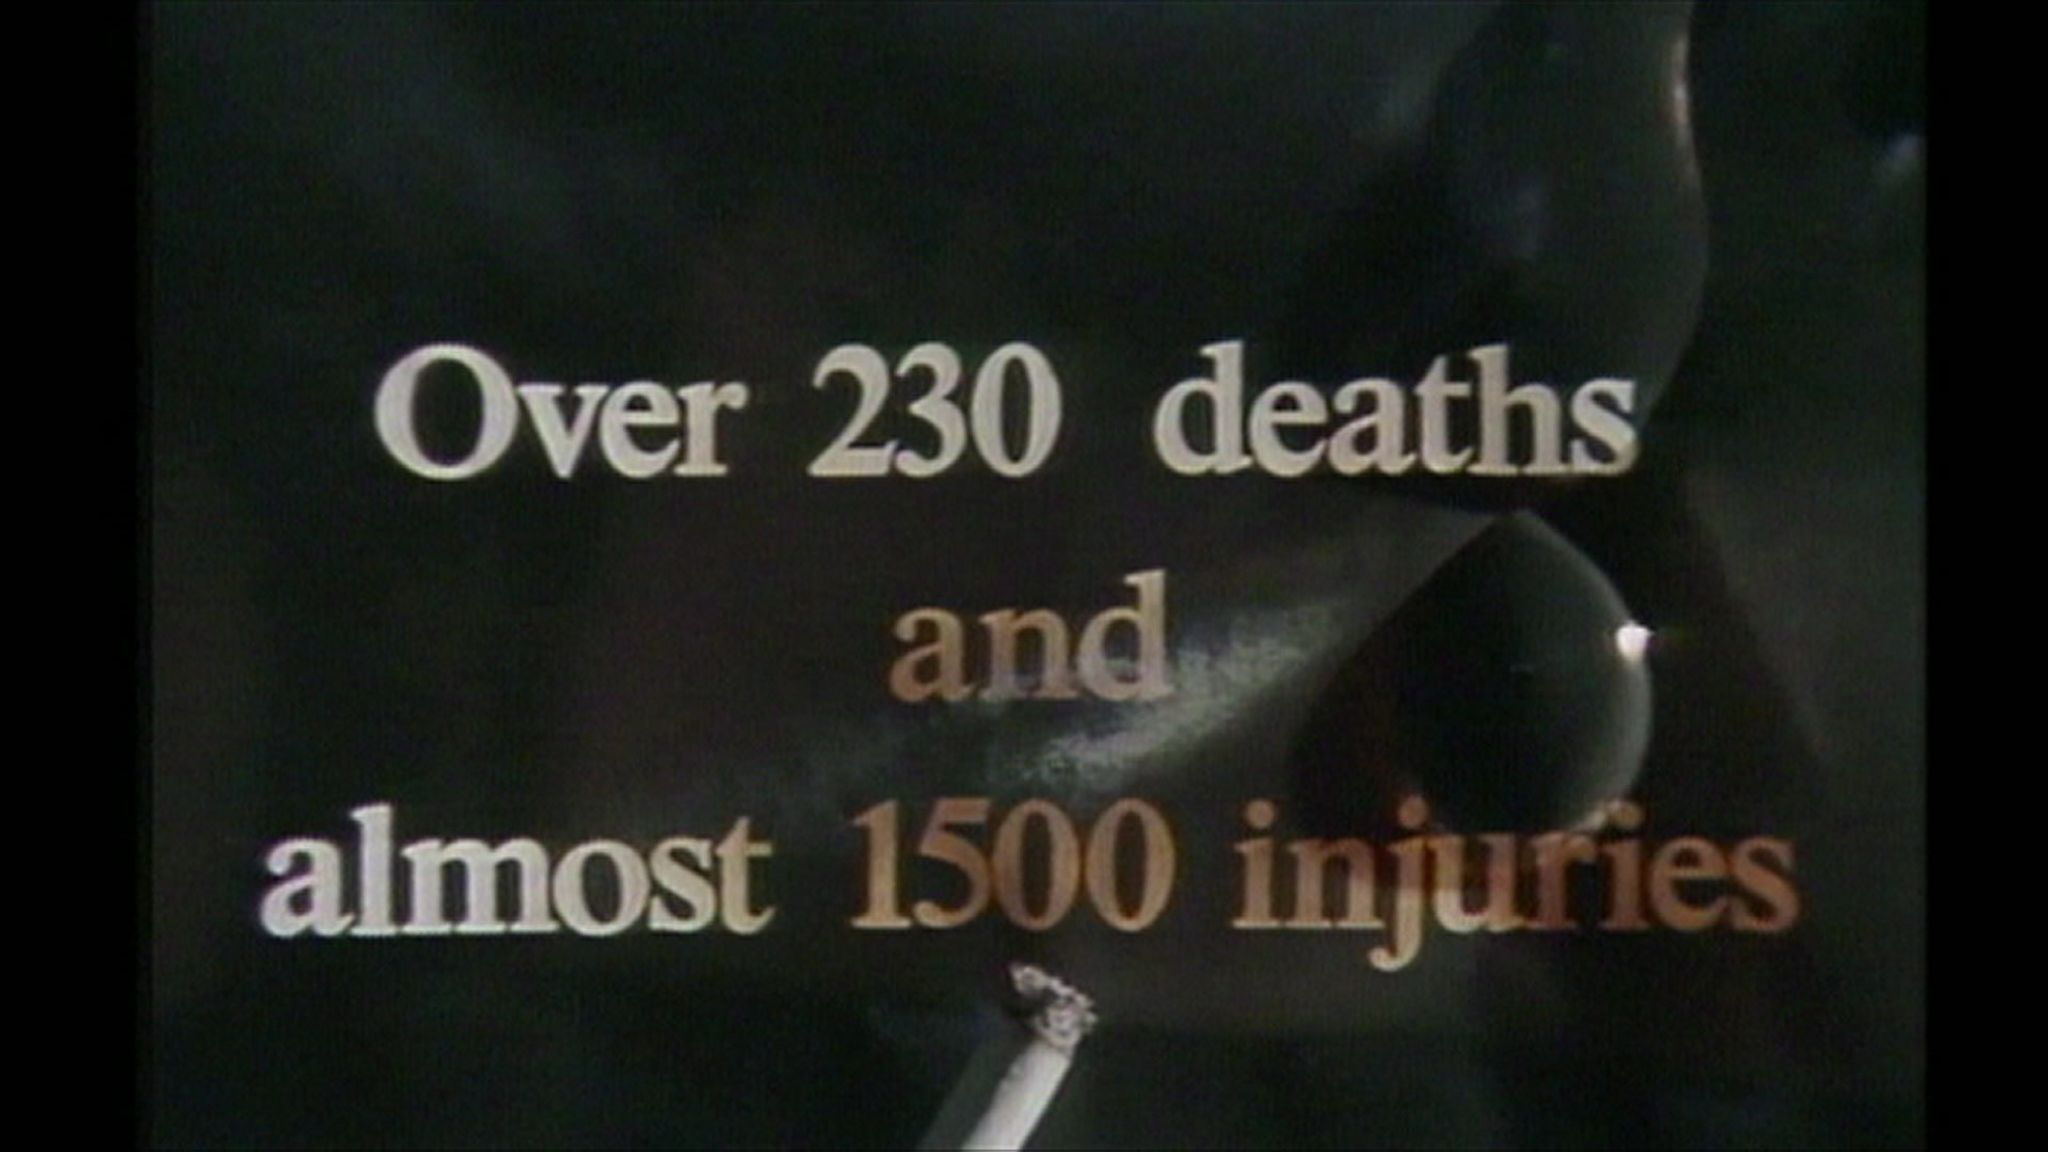 A still from a public information film on the human cost of fires caused by smoking